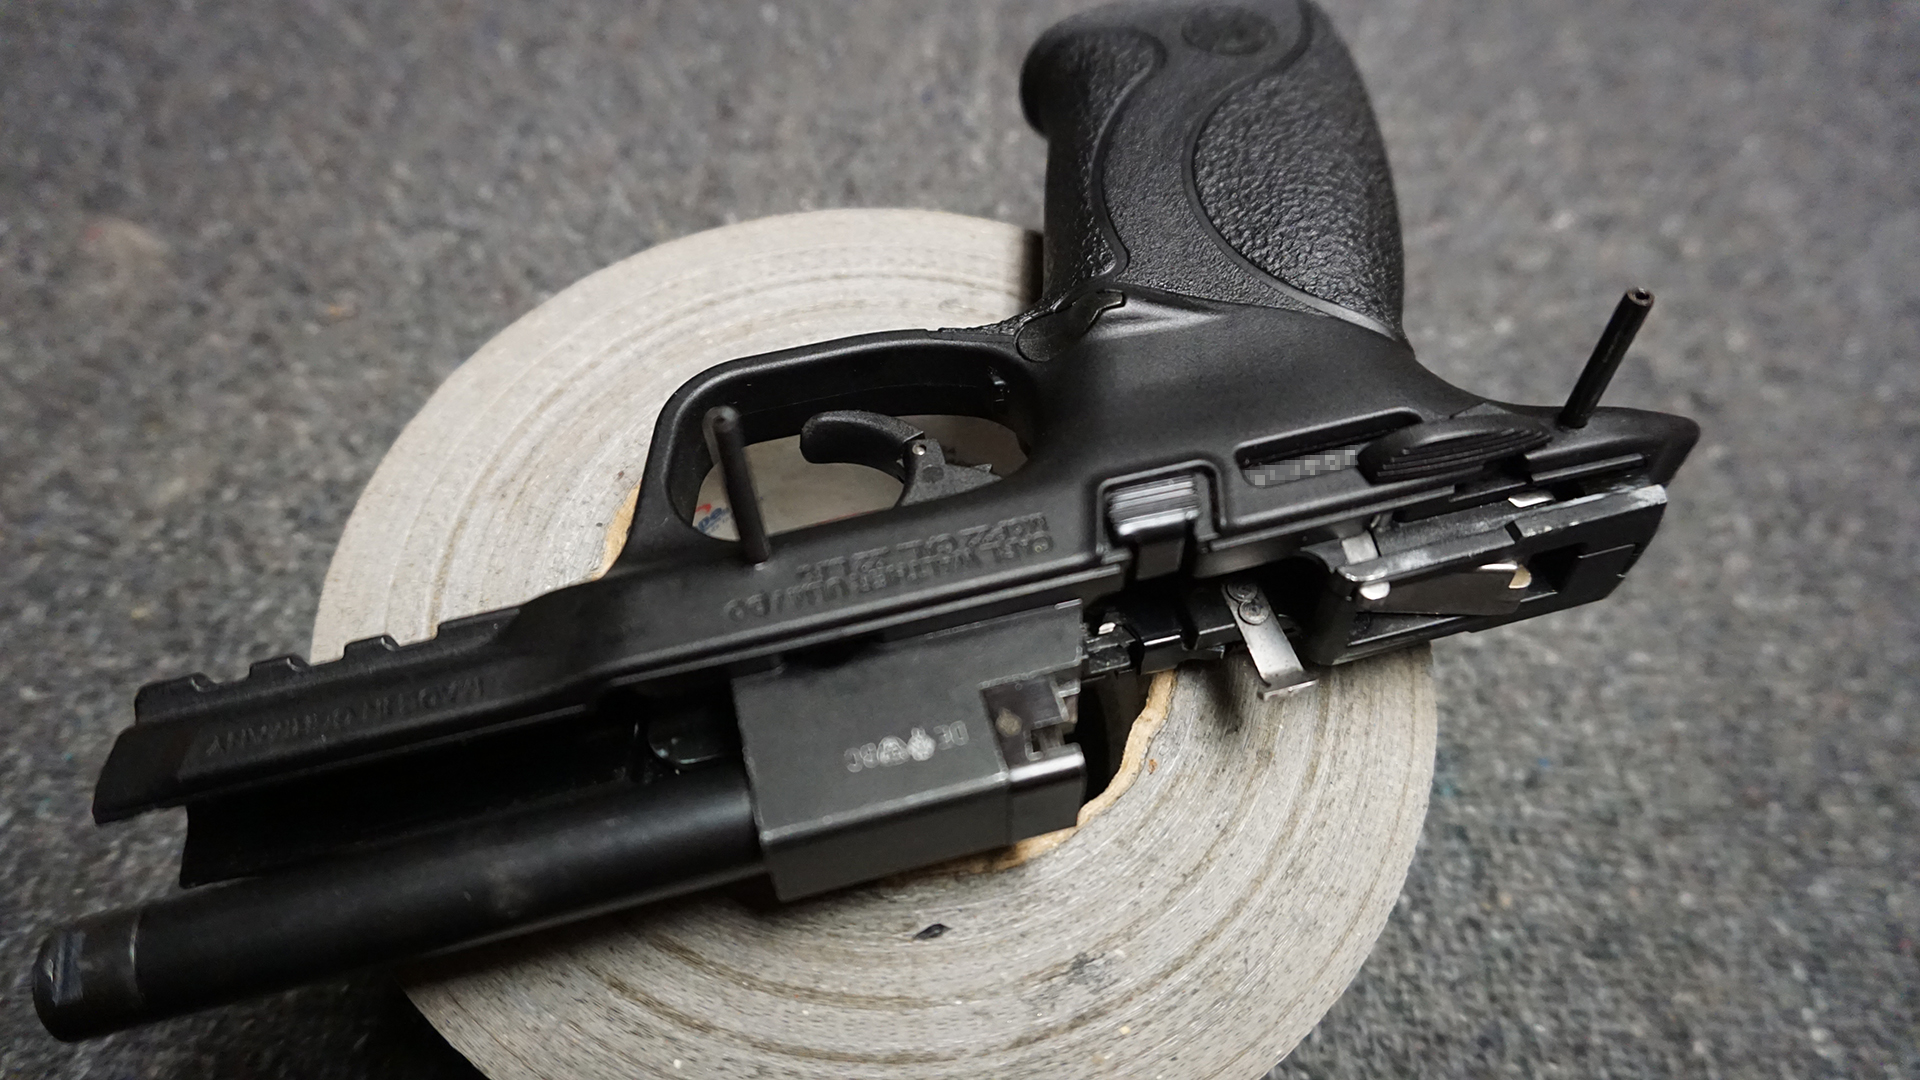 hight resolution of matching roll pins similar to the centerfire pistols can be snug